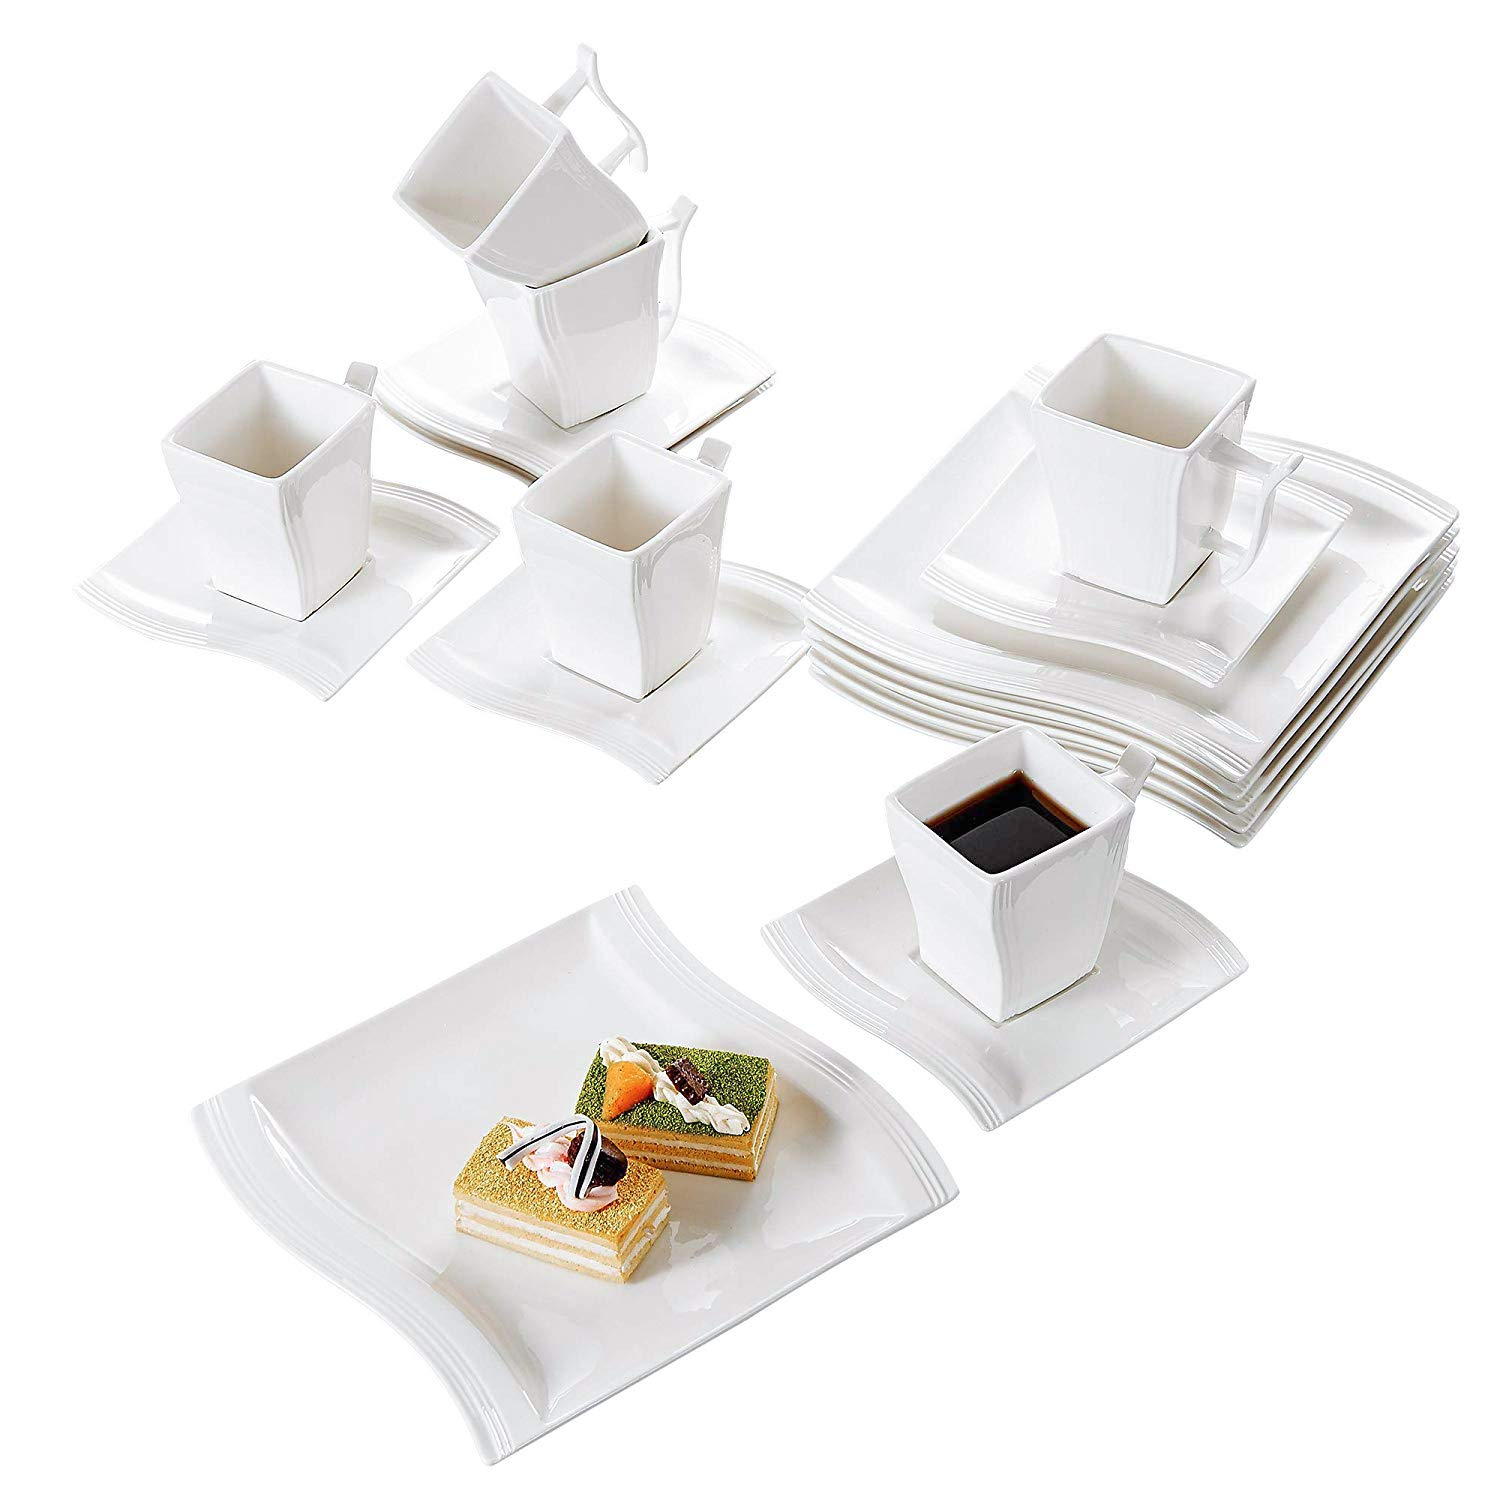 Malacasa 18-Piece Porcelain Teacups and Saucer Set with Coffee Cup Set Dessert Plates and Saucers Service for 6, Ivory White - Series Flora by Malacasa (Image #1)